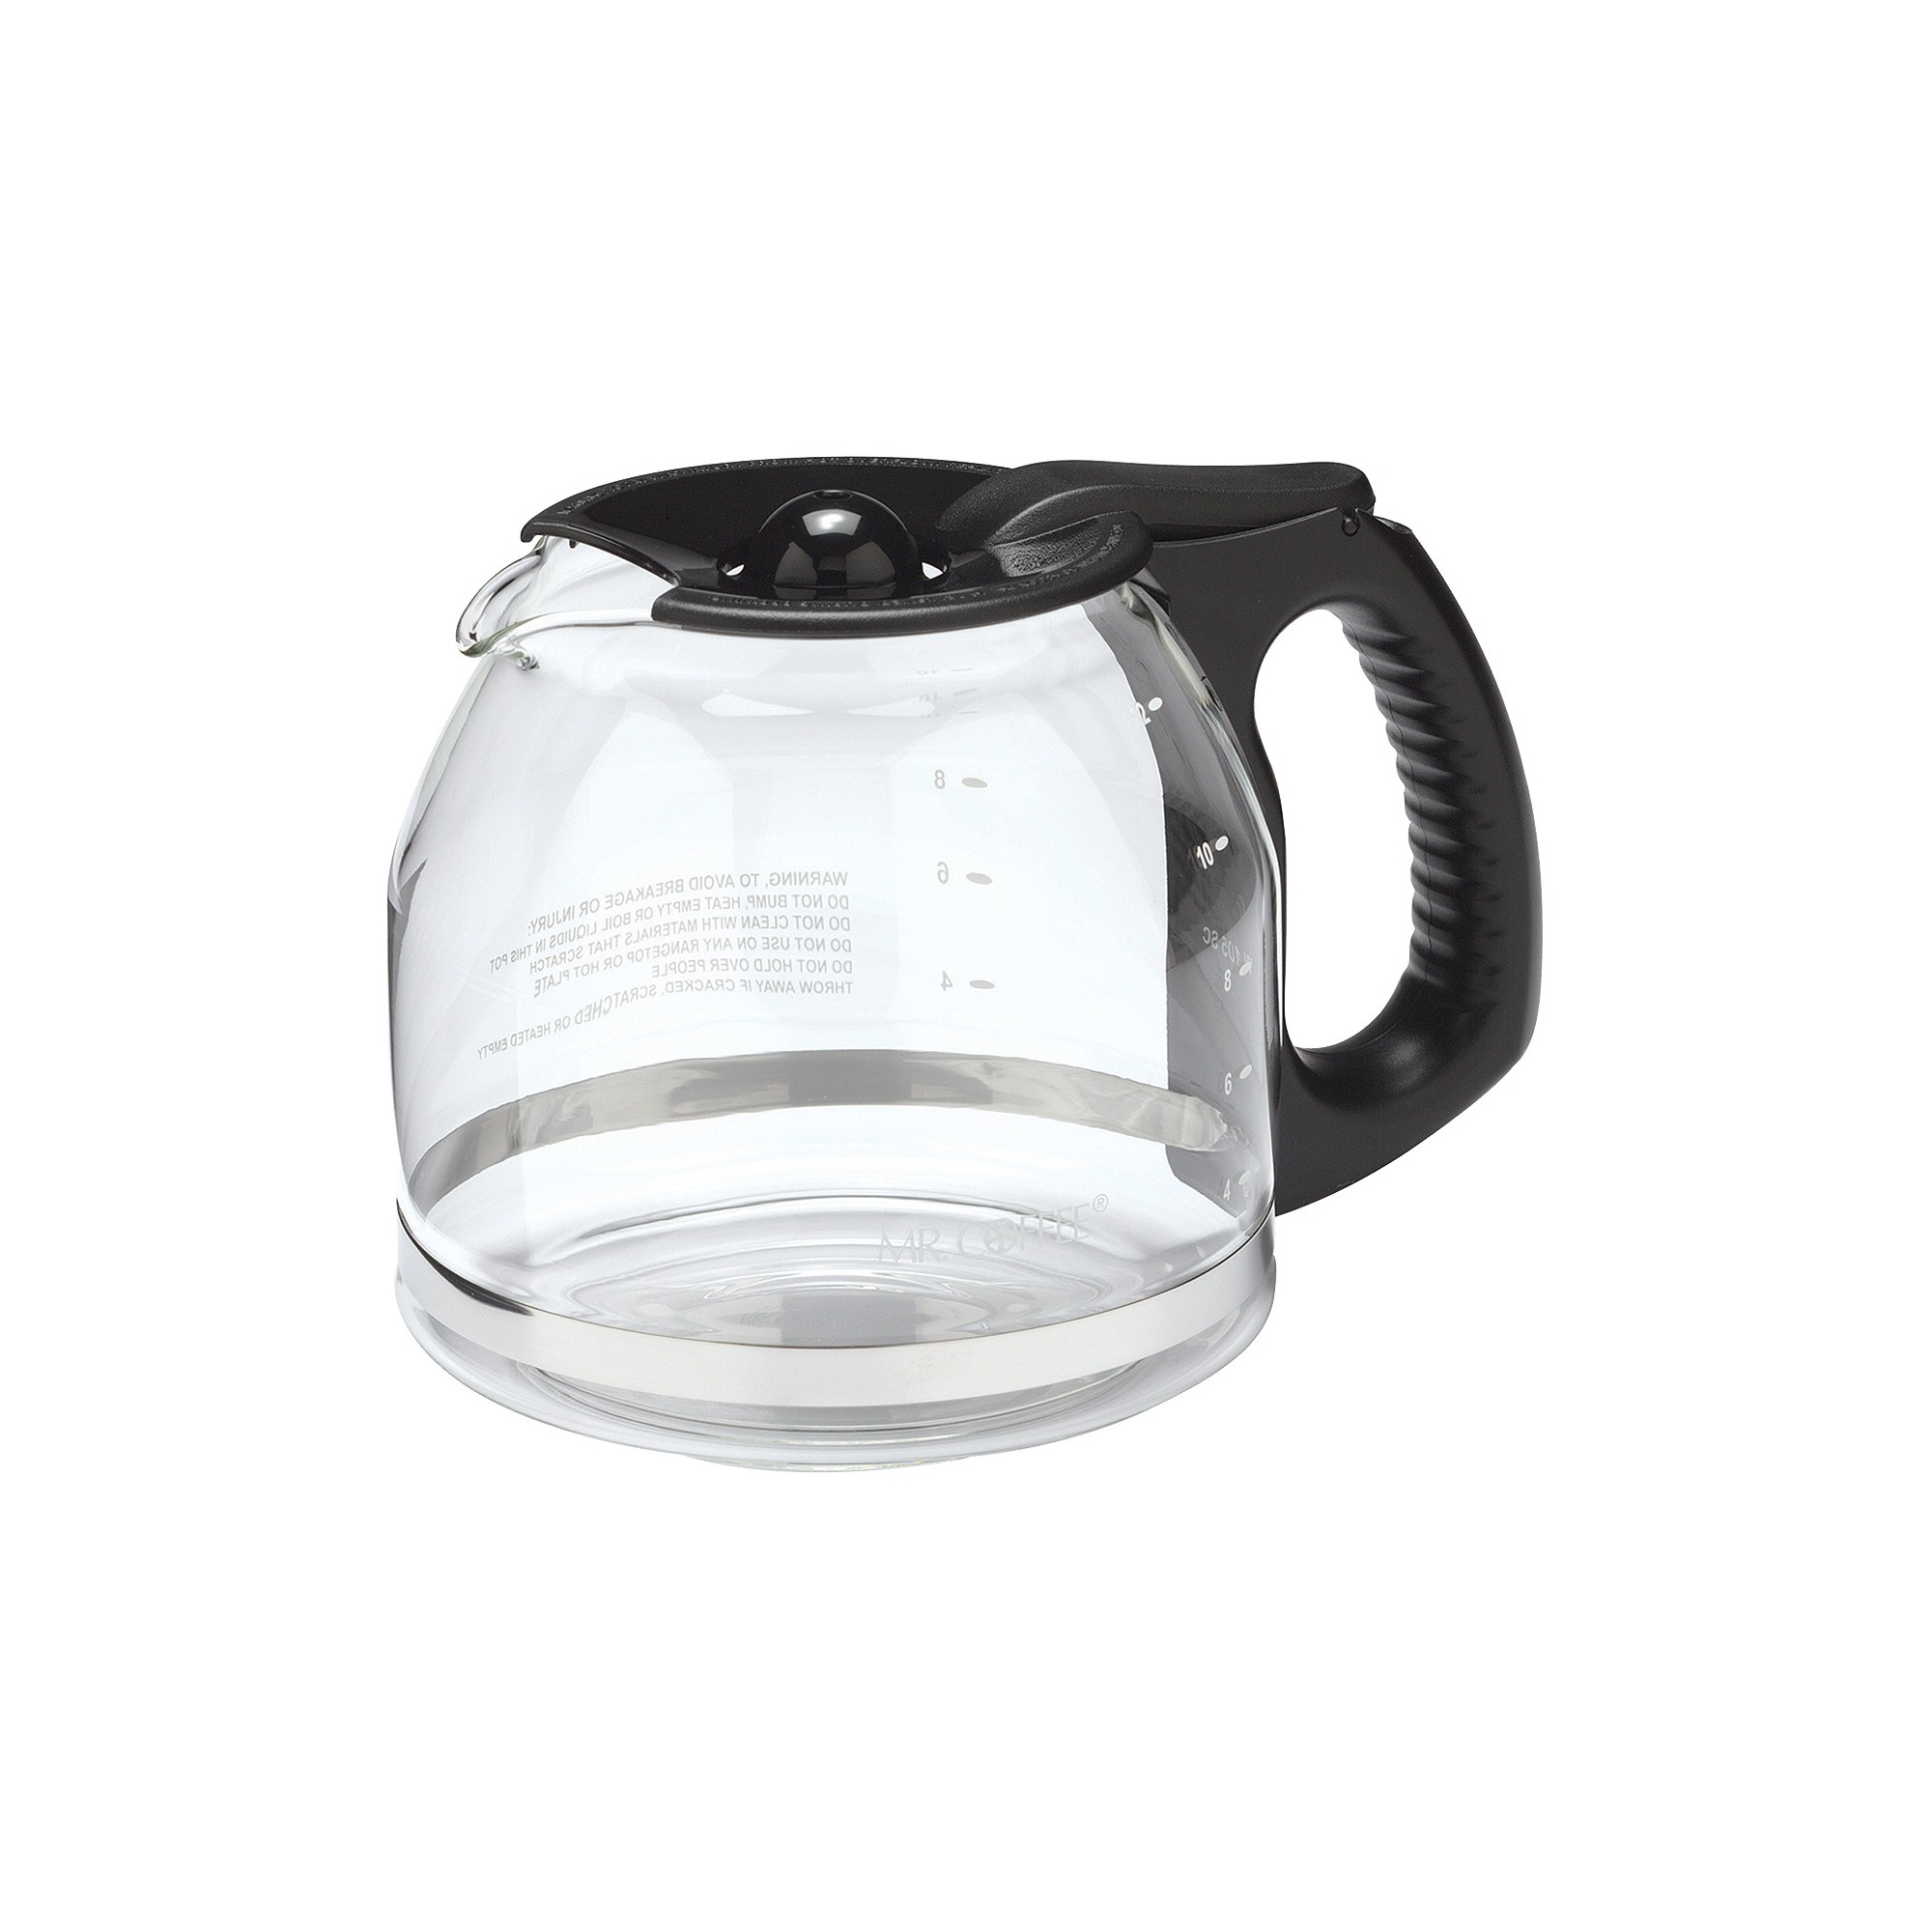 Mr. Coffee 12 Cup Glass Carafe - Black PLD12-RB, White